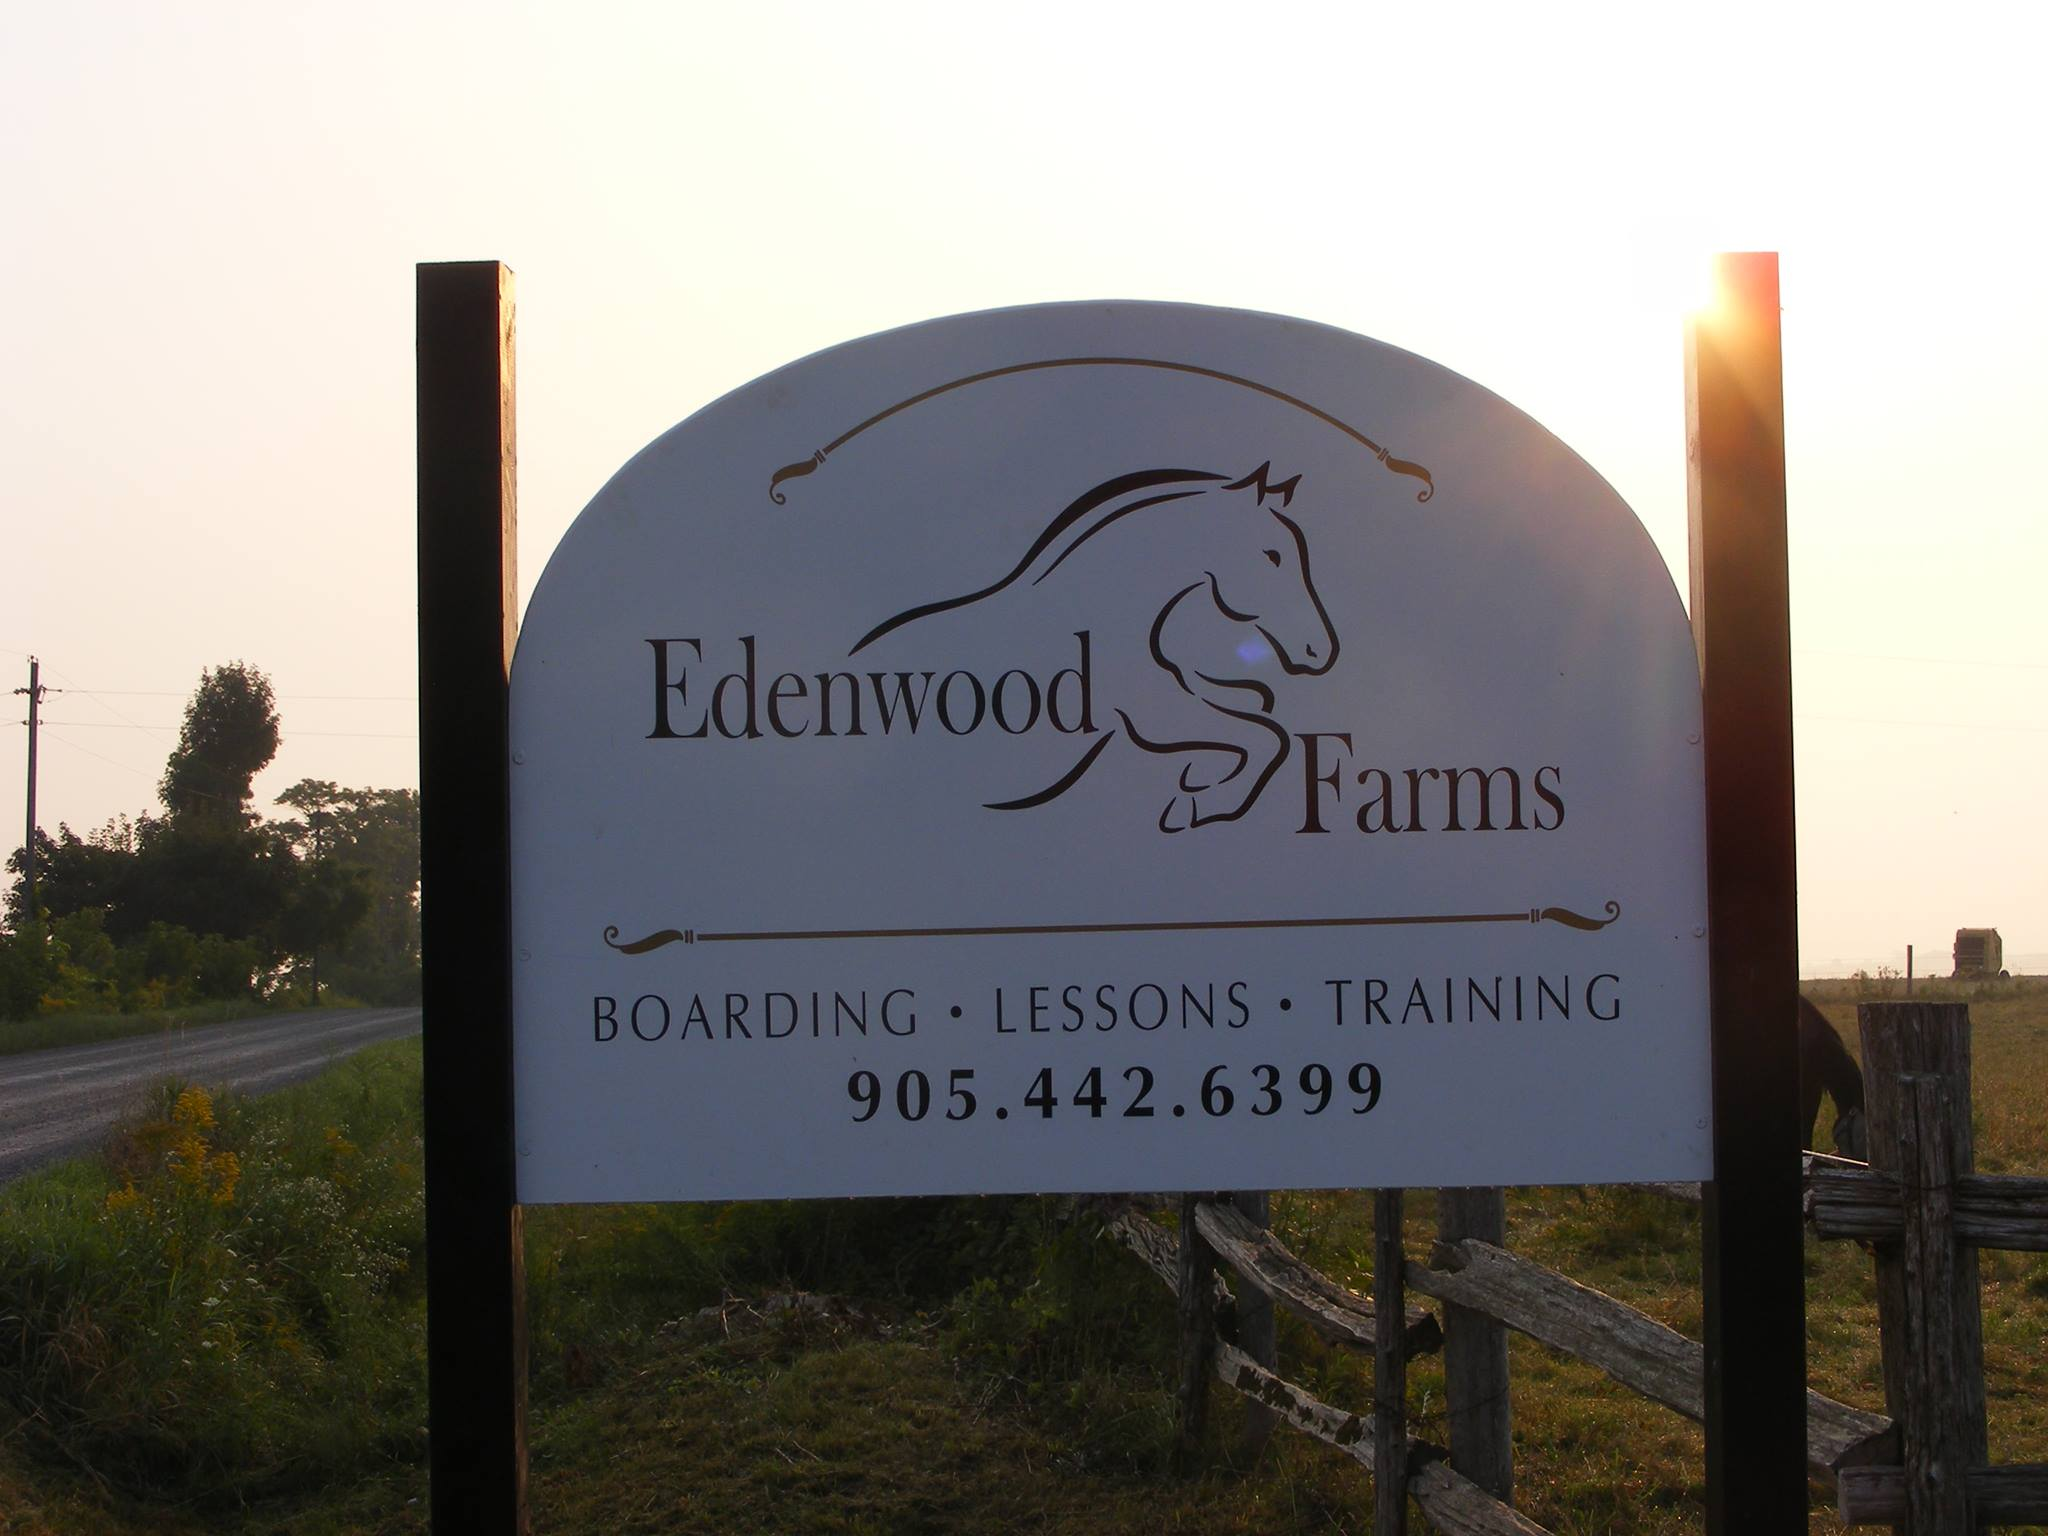 Edenwood Farms